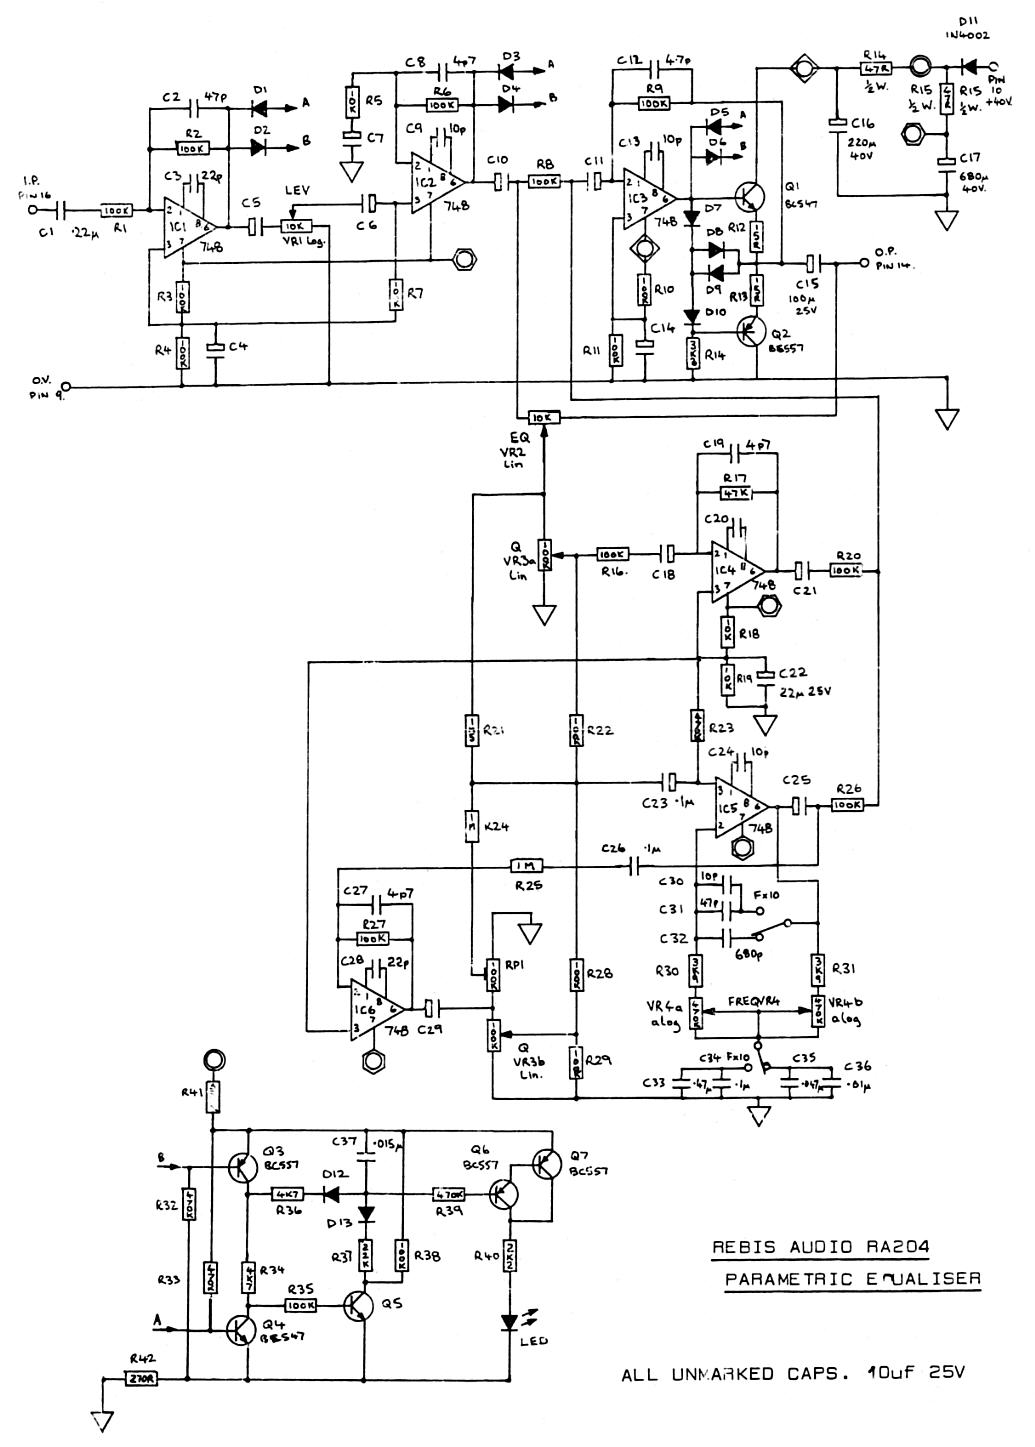 rebis audio ra204 parametric eq cct old viking pa2a wiring diagram diagram wiring diagrams for diy read wiring diagrams at fashall.co